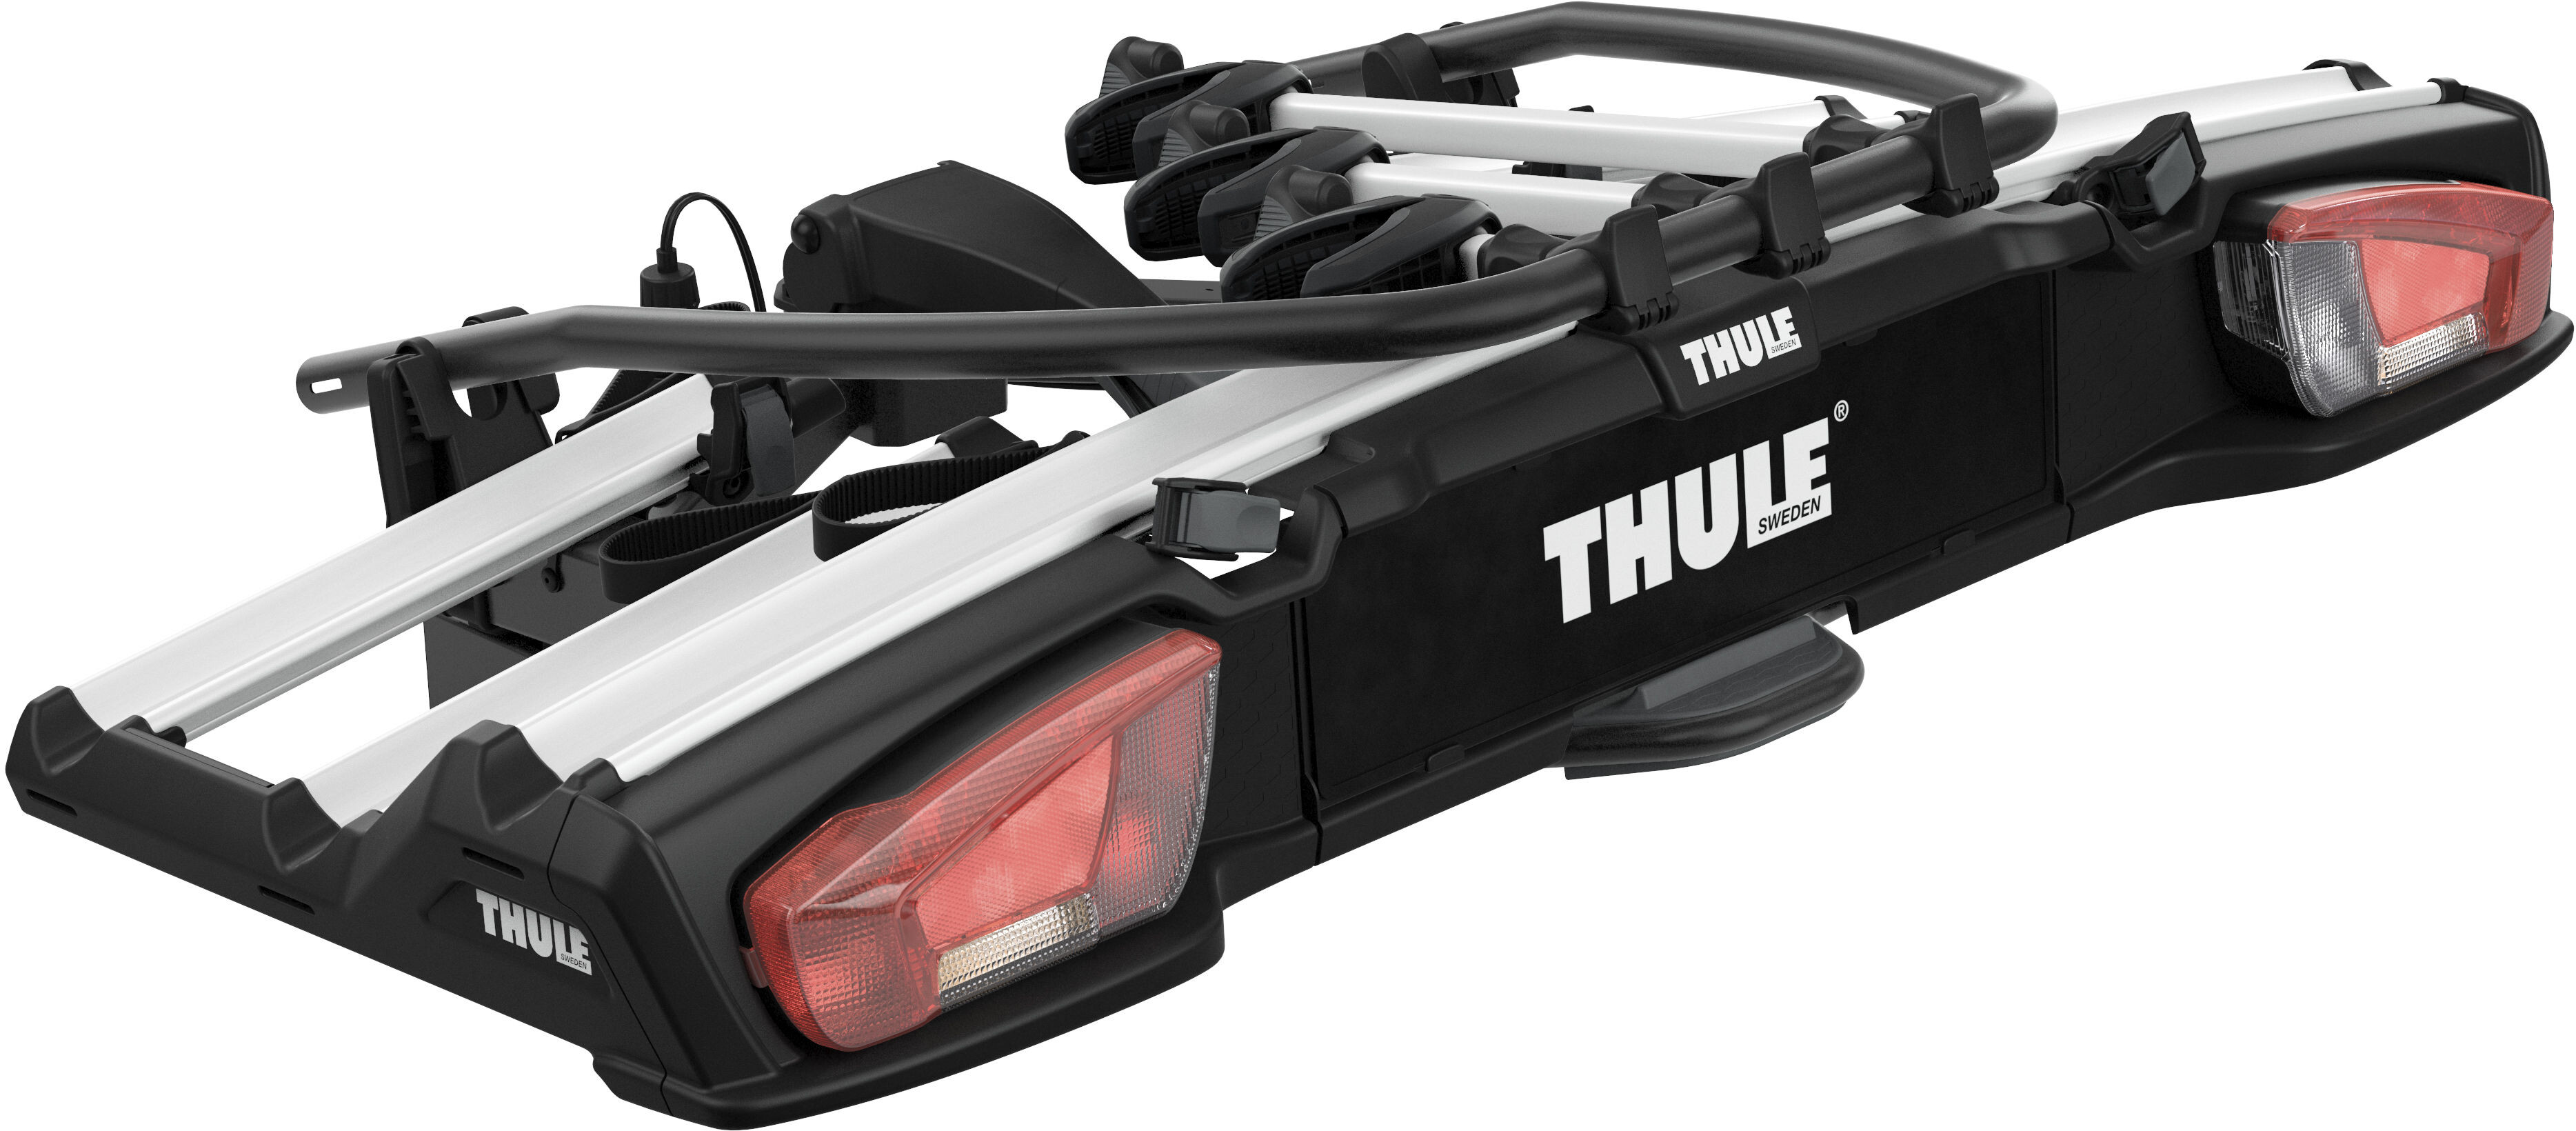 thule velospace xt fahrradtr ger f r 3 fahrr der g nstig. Black Bedroom Furniture Sets. Home Design Ideas